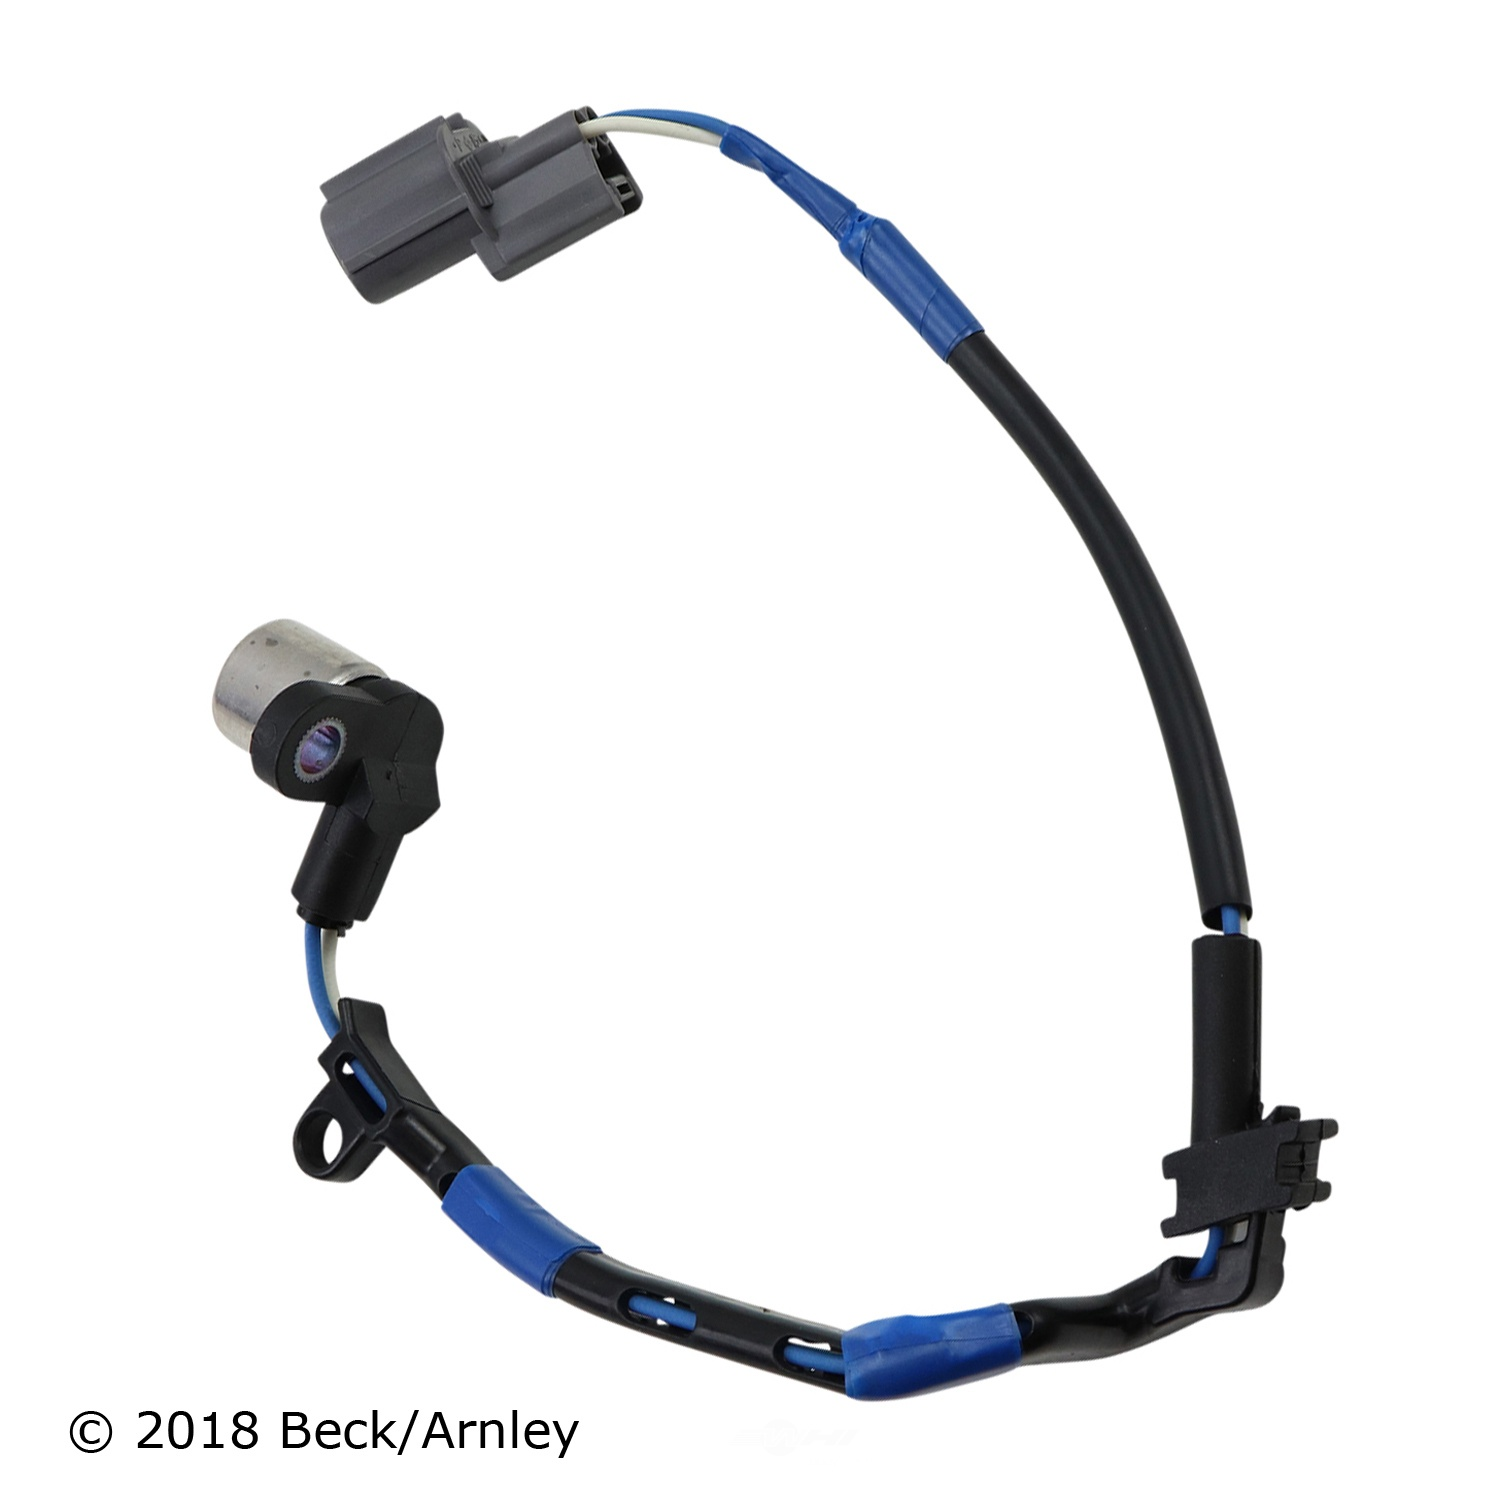 BECK/ARNLEY - Engine Crank Angle Sensor - BAR 180-0605